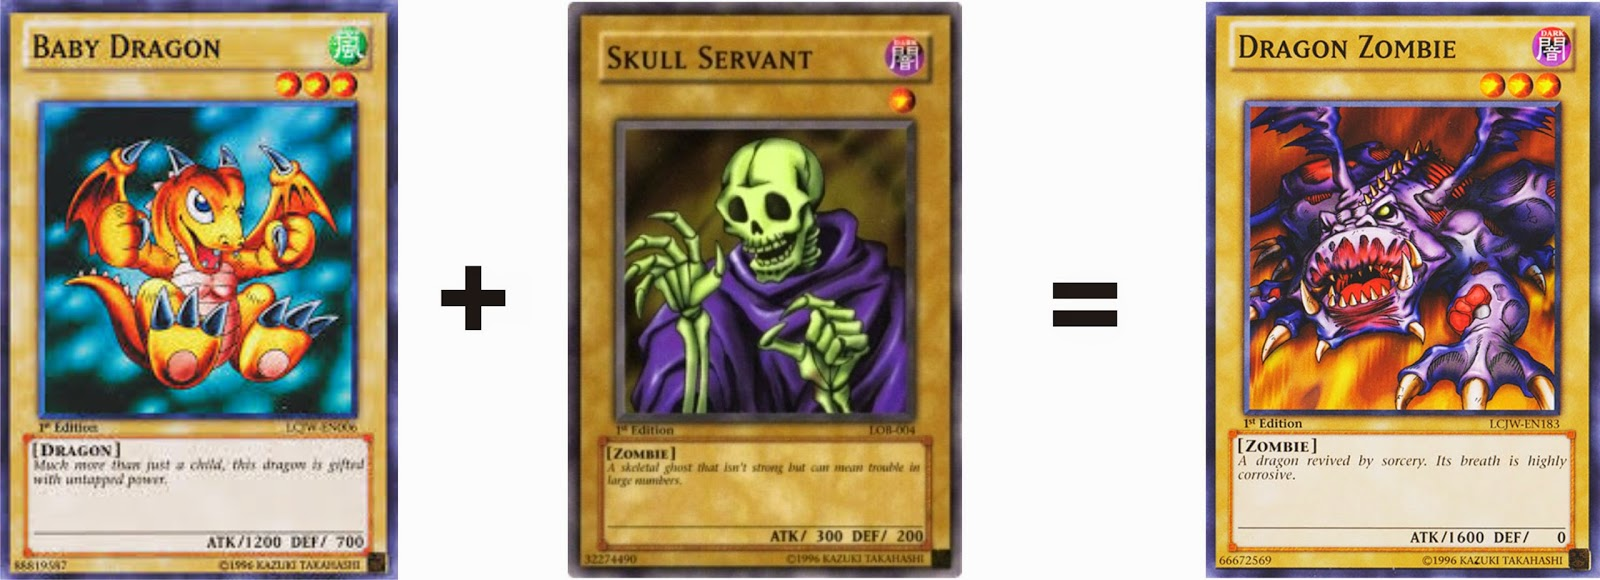 Extra Blog For Extraordinary Duelist Blast From The Past Skull